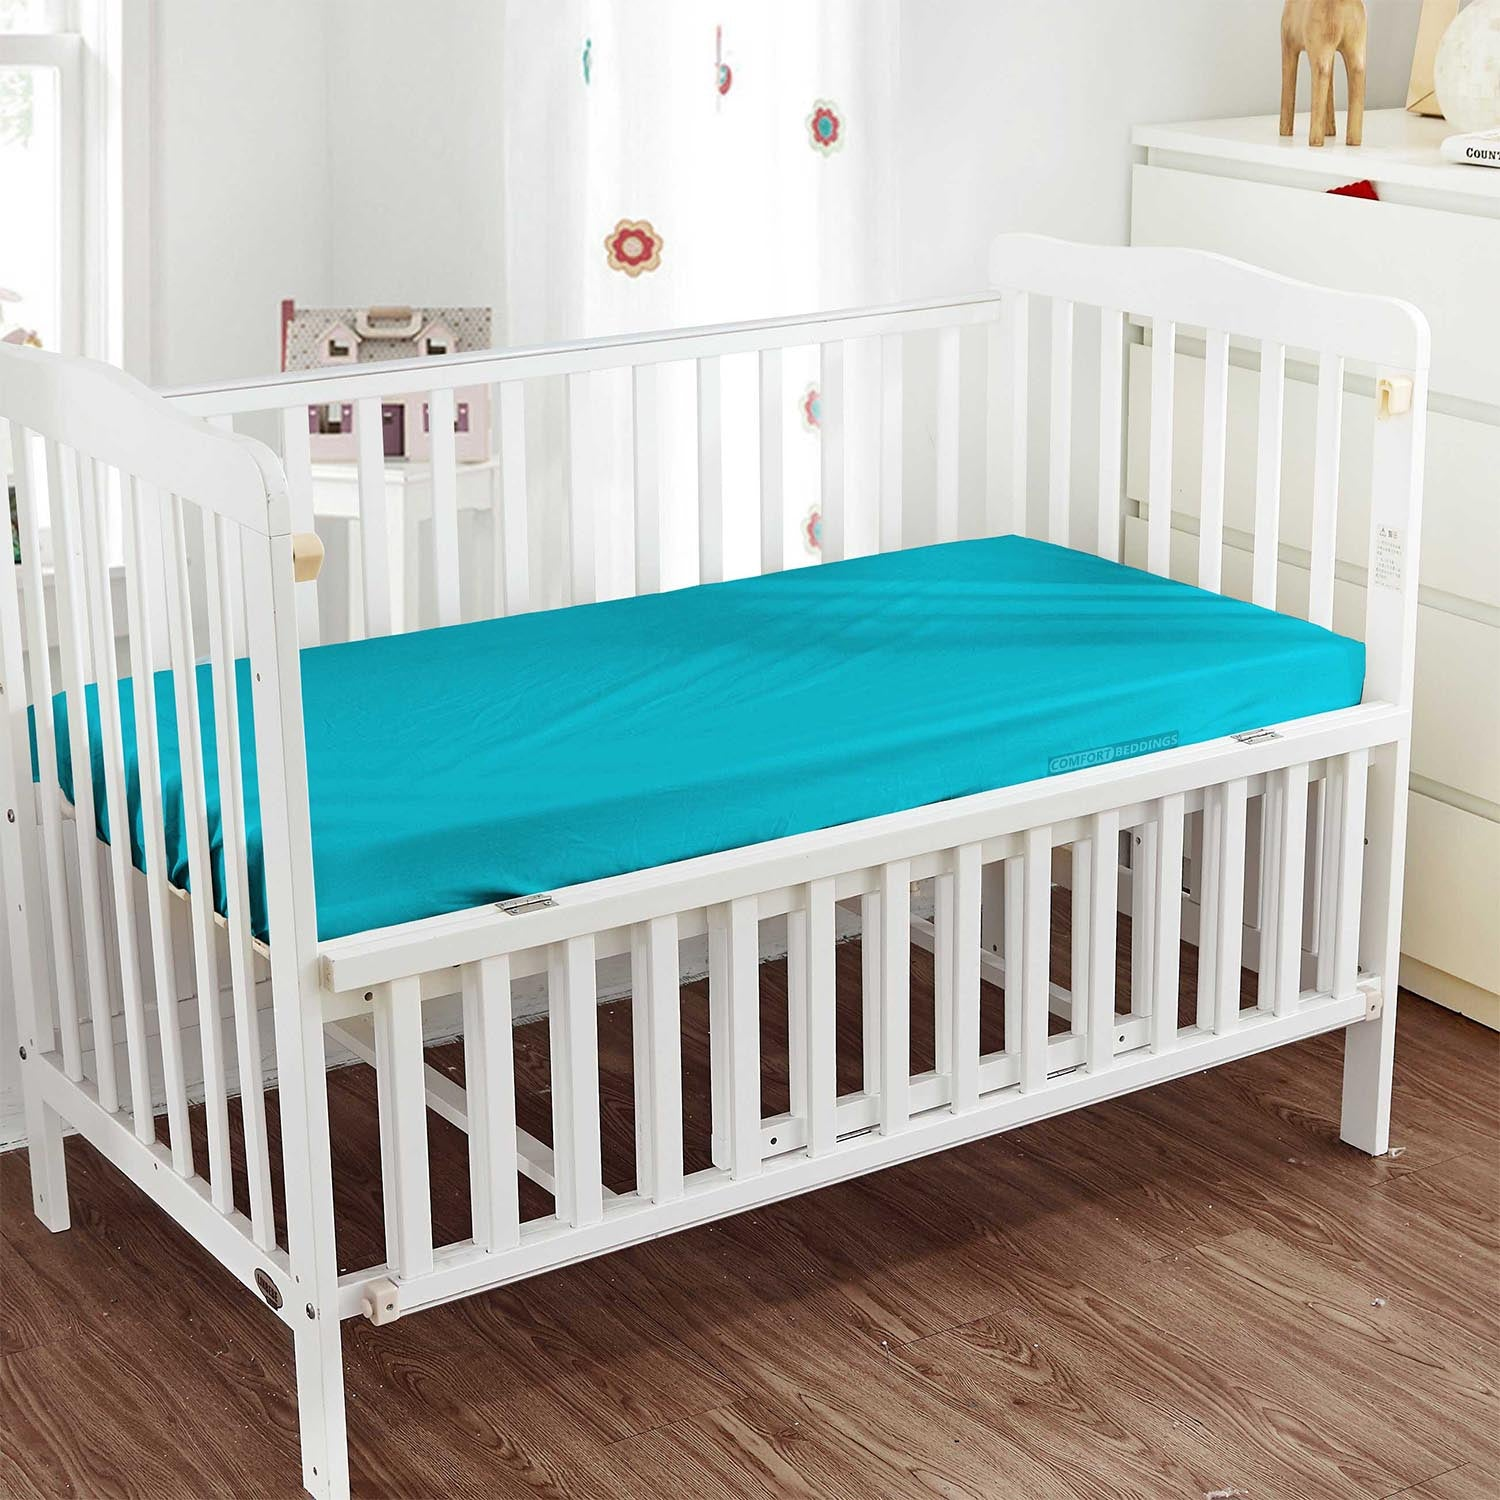 600TC Egyptian Cotton Turquoise Blue Crib Fitted Sheets